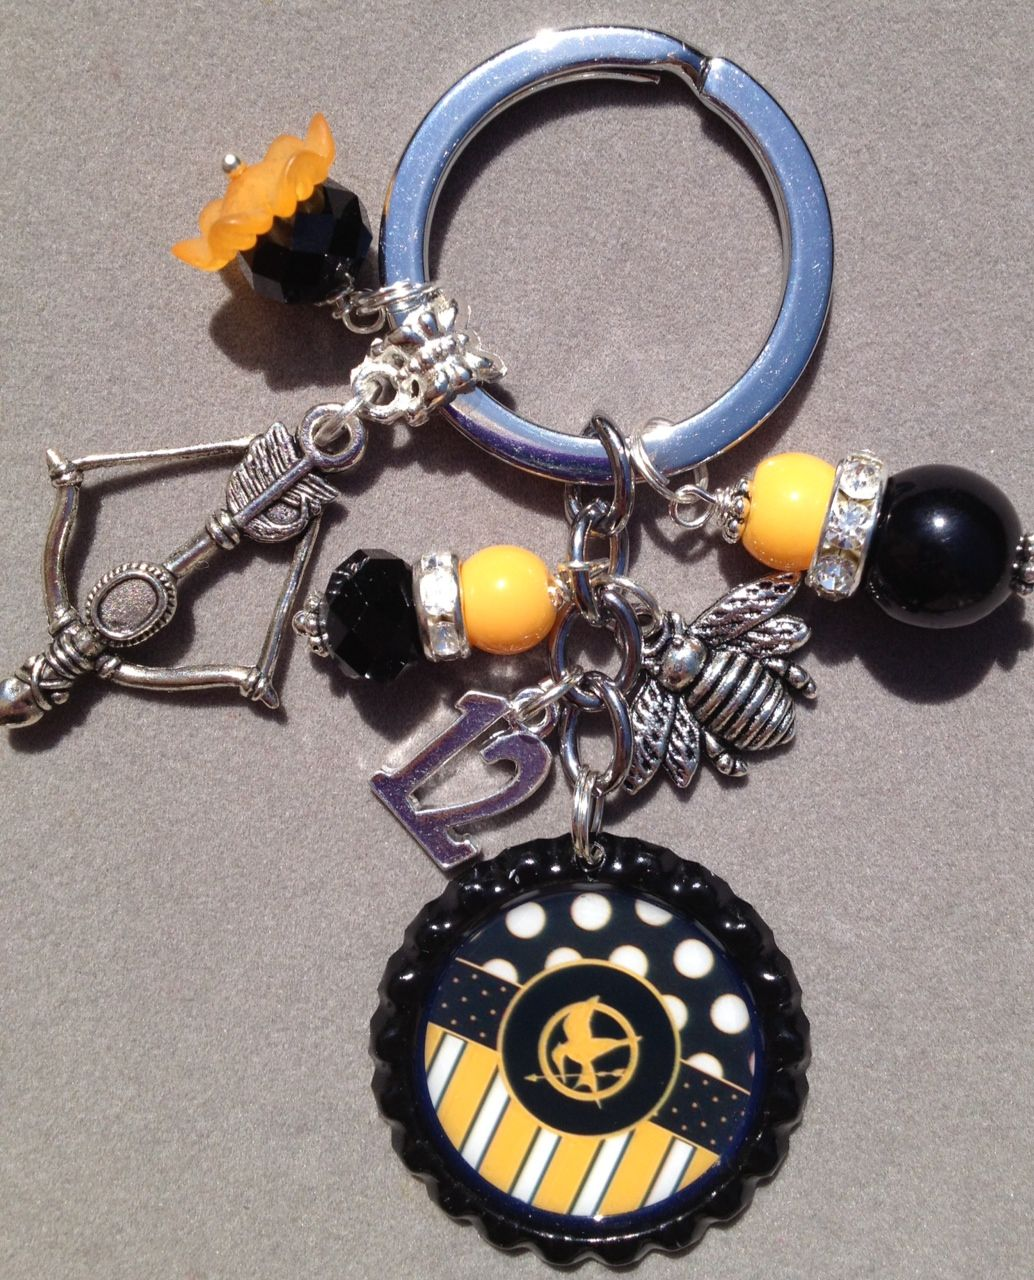 This Listing Is For One Hunger Games Inspired Bottle Cap Key Chain The Key Chain Is Embellished